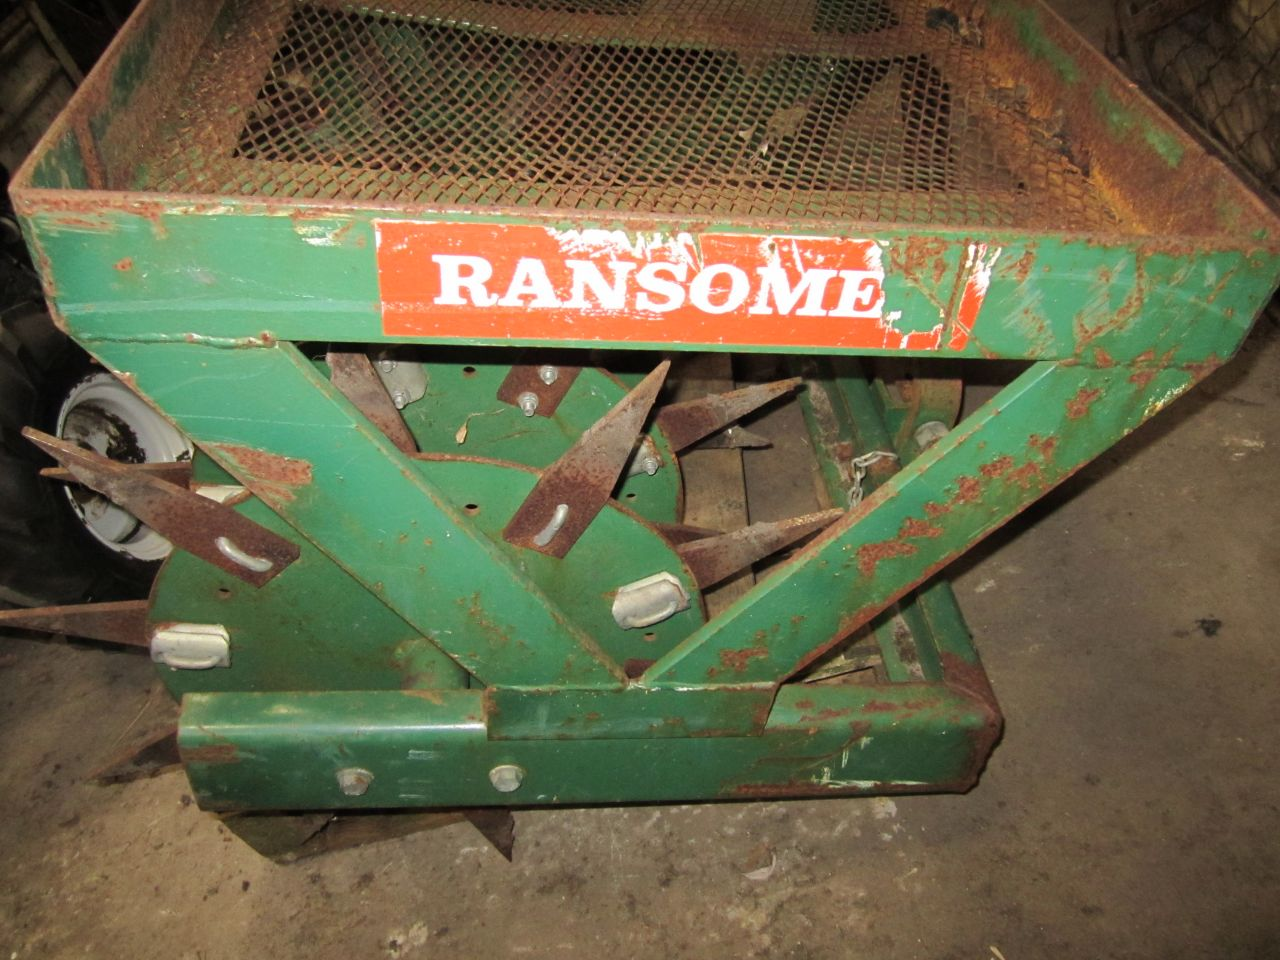 Ransomes beluchter